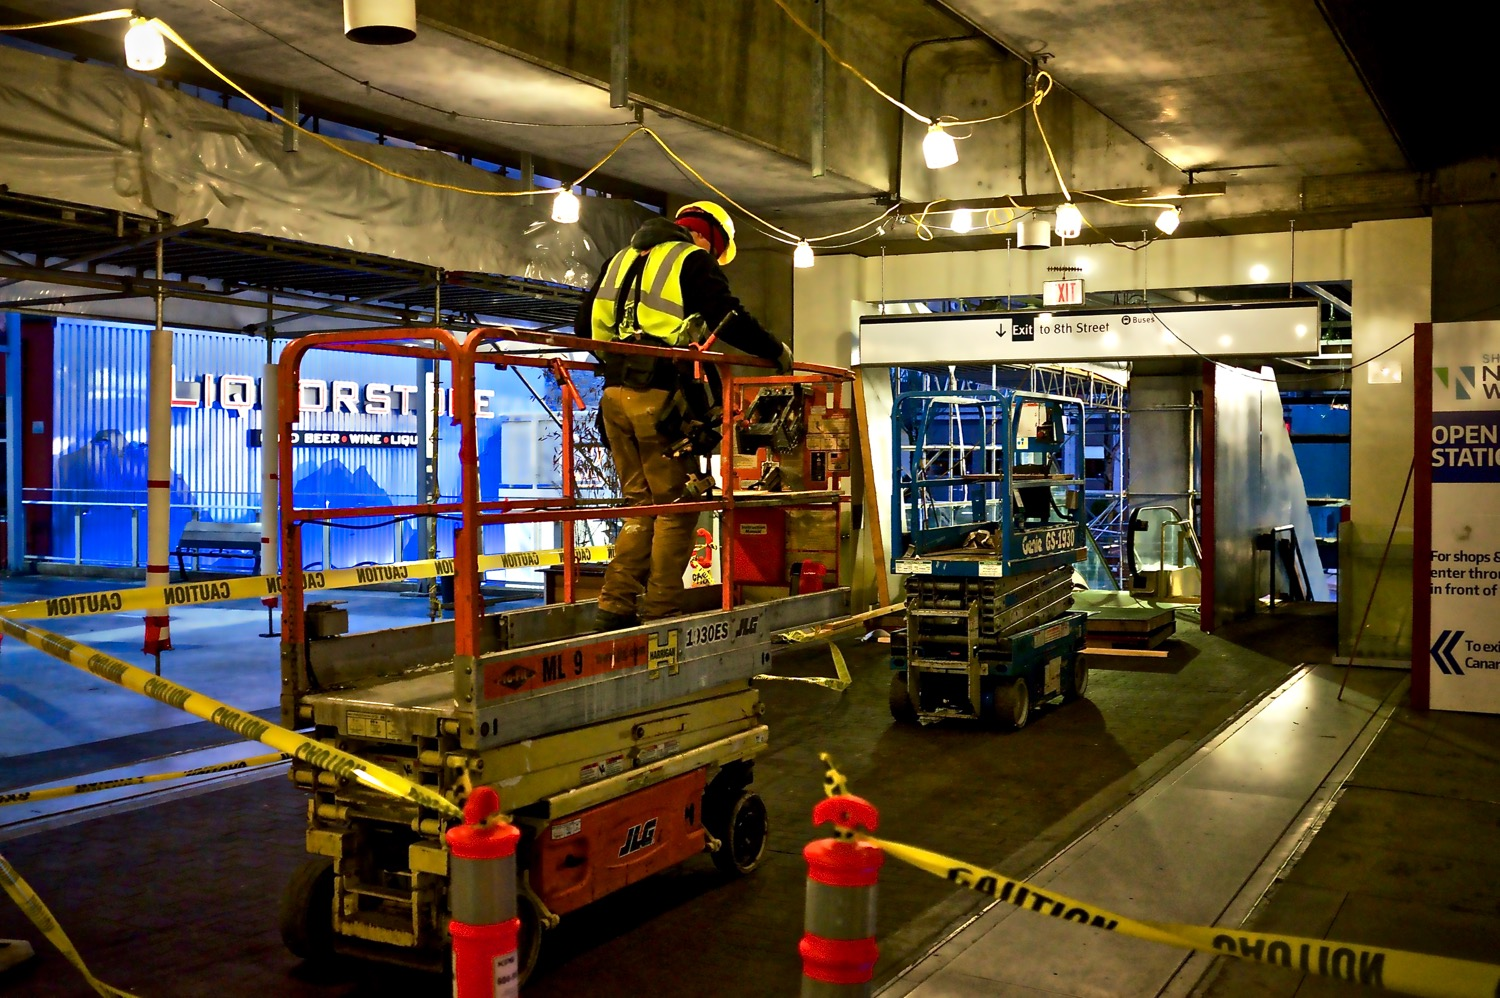 Renovations at New Westminster SkyTrain Station  Click image to enlarge.